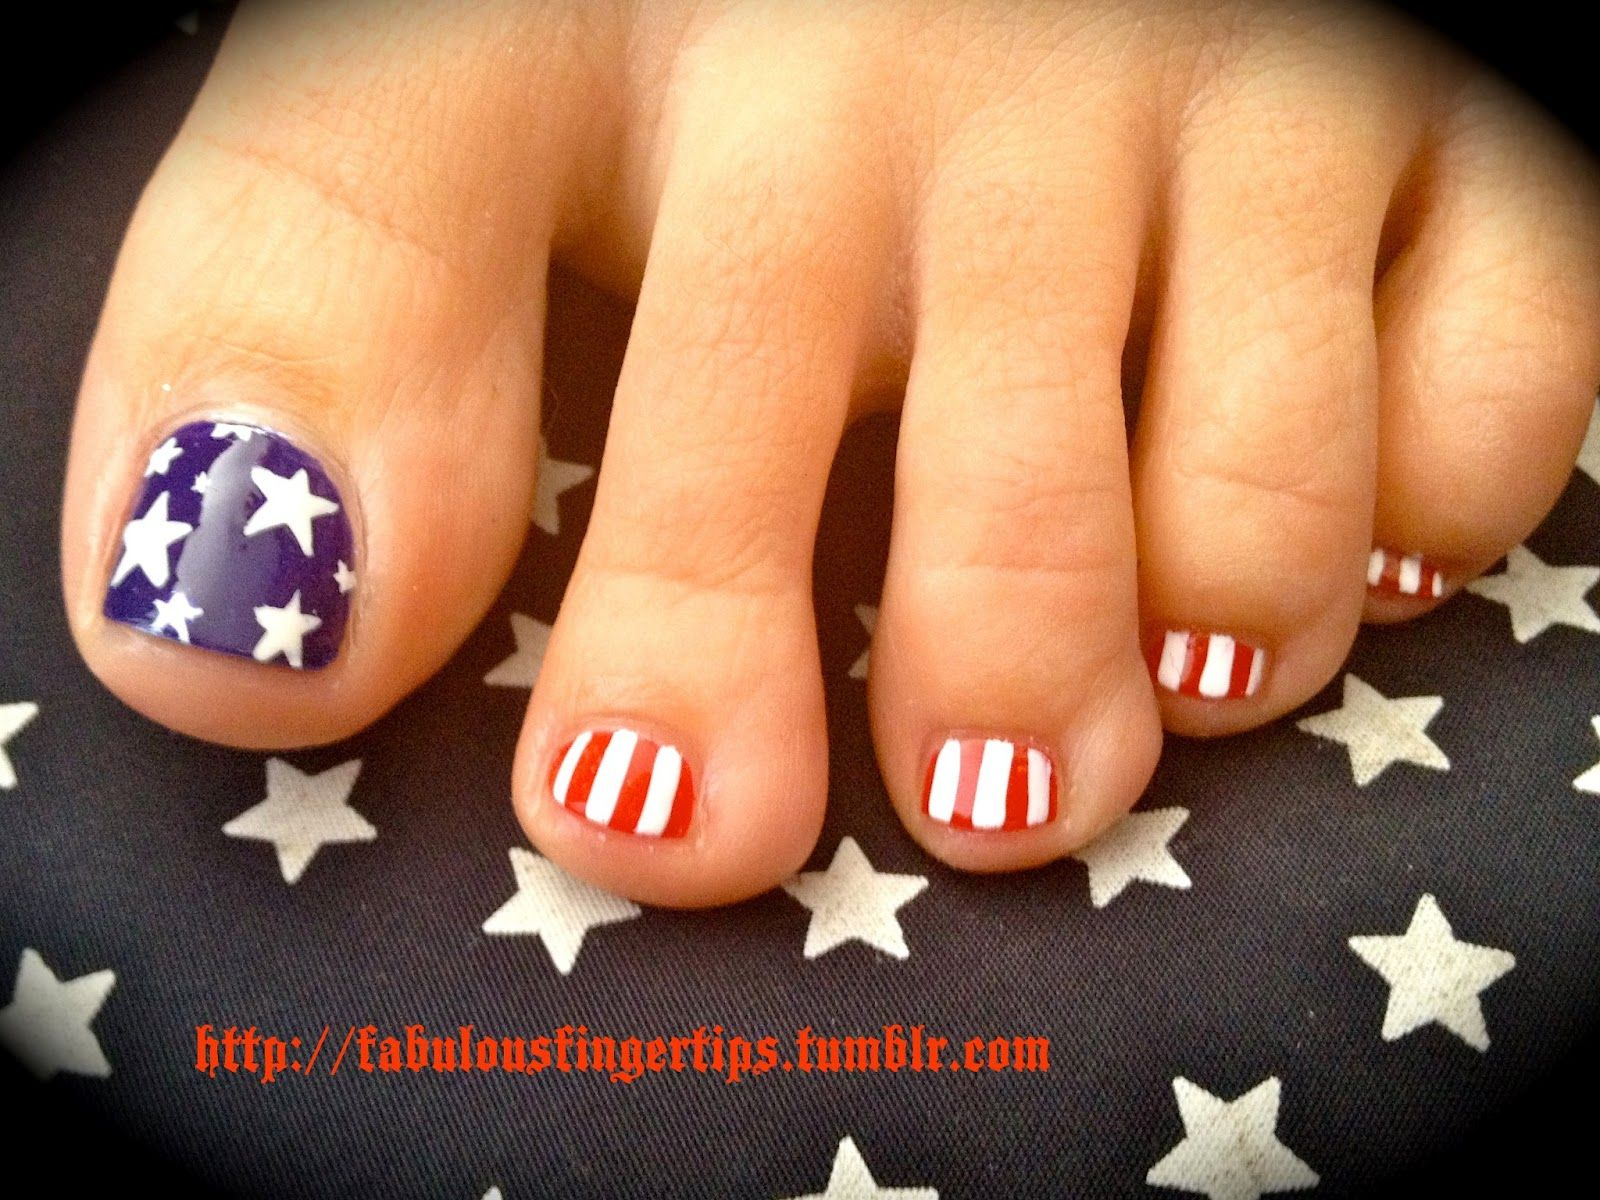 red white and blue nails - Google Search | Nailed it ... | Pinterest ...